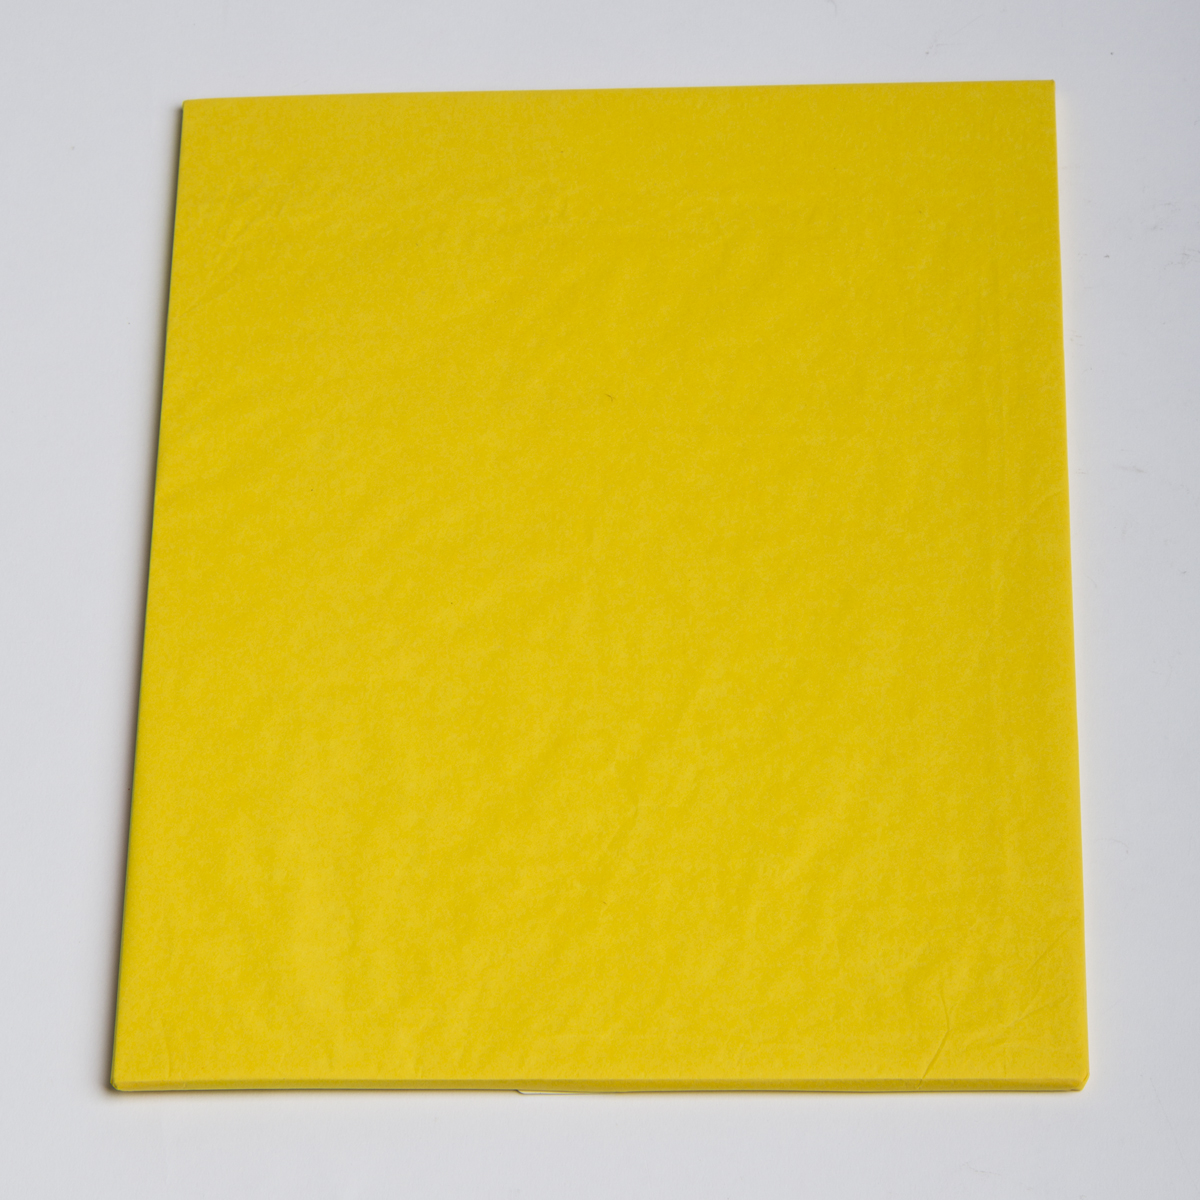 yellow tissue paper Product - jam paper tissue paper, yellow, 10 sheets/pack product image price  product - gift wrap tissue- white - 15x20 - 100 sheets - flexicore packaging.